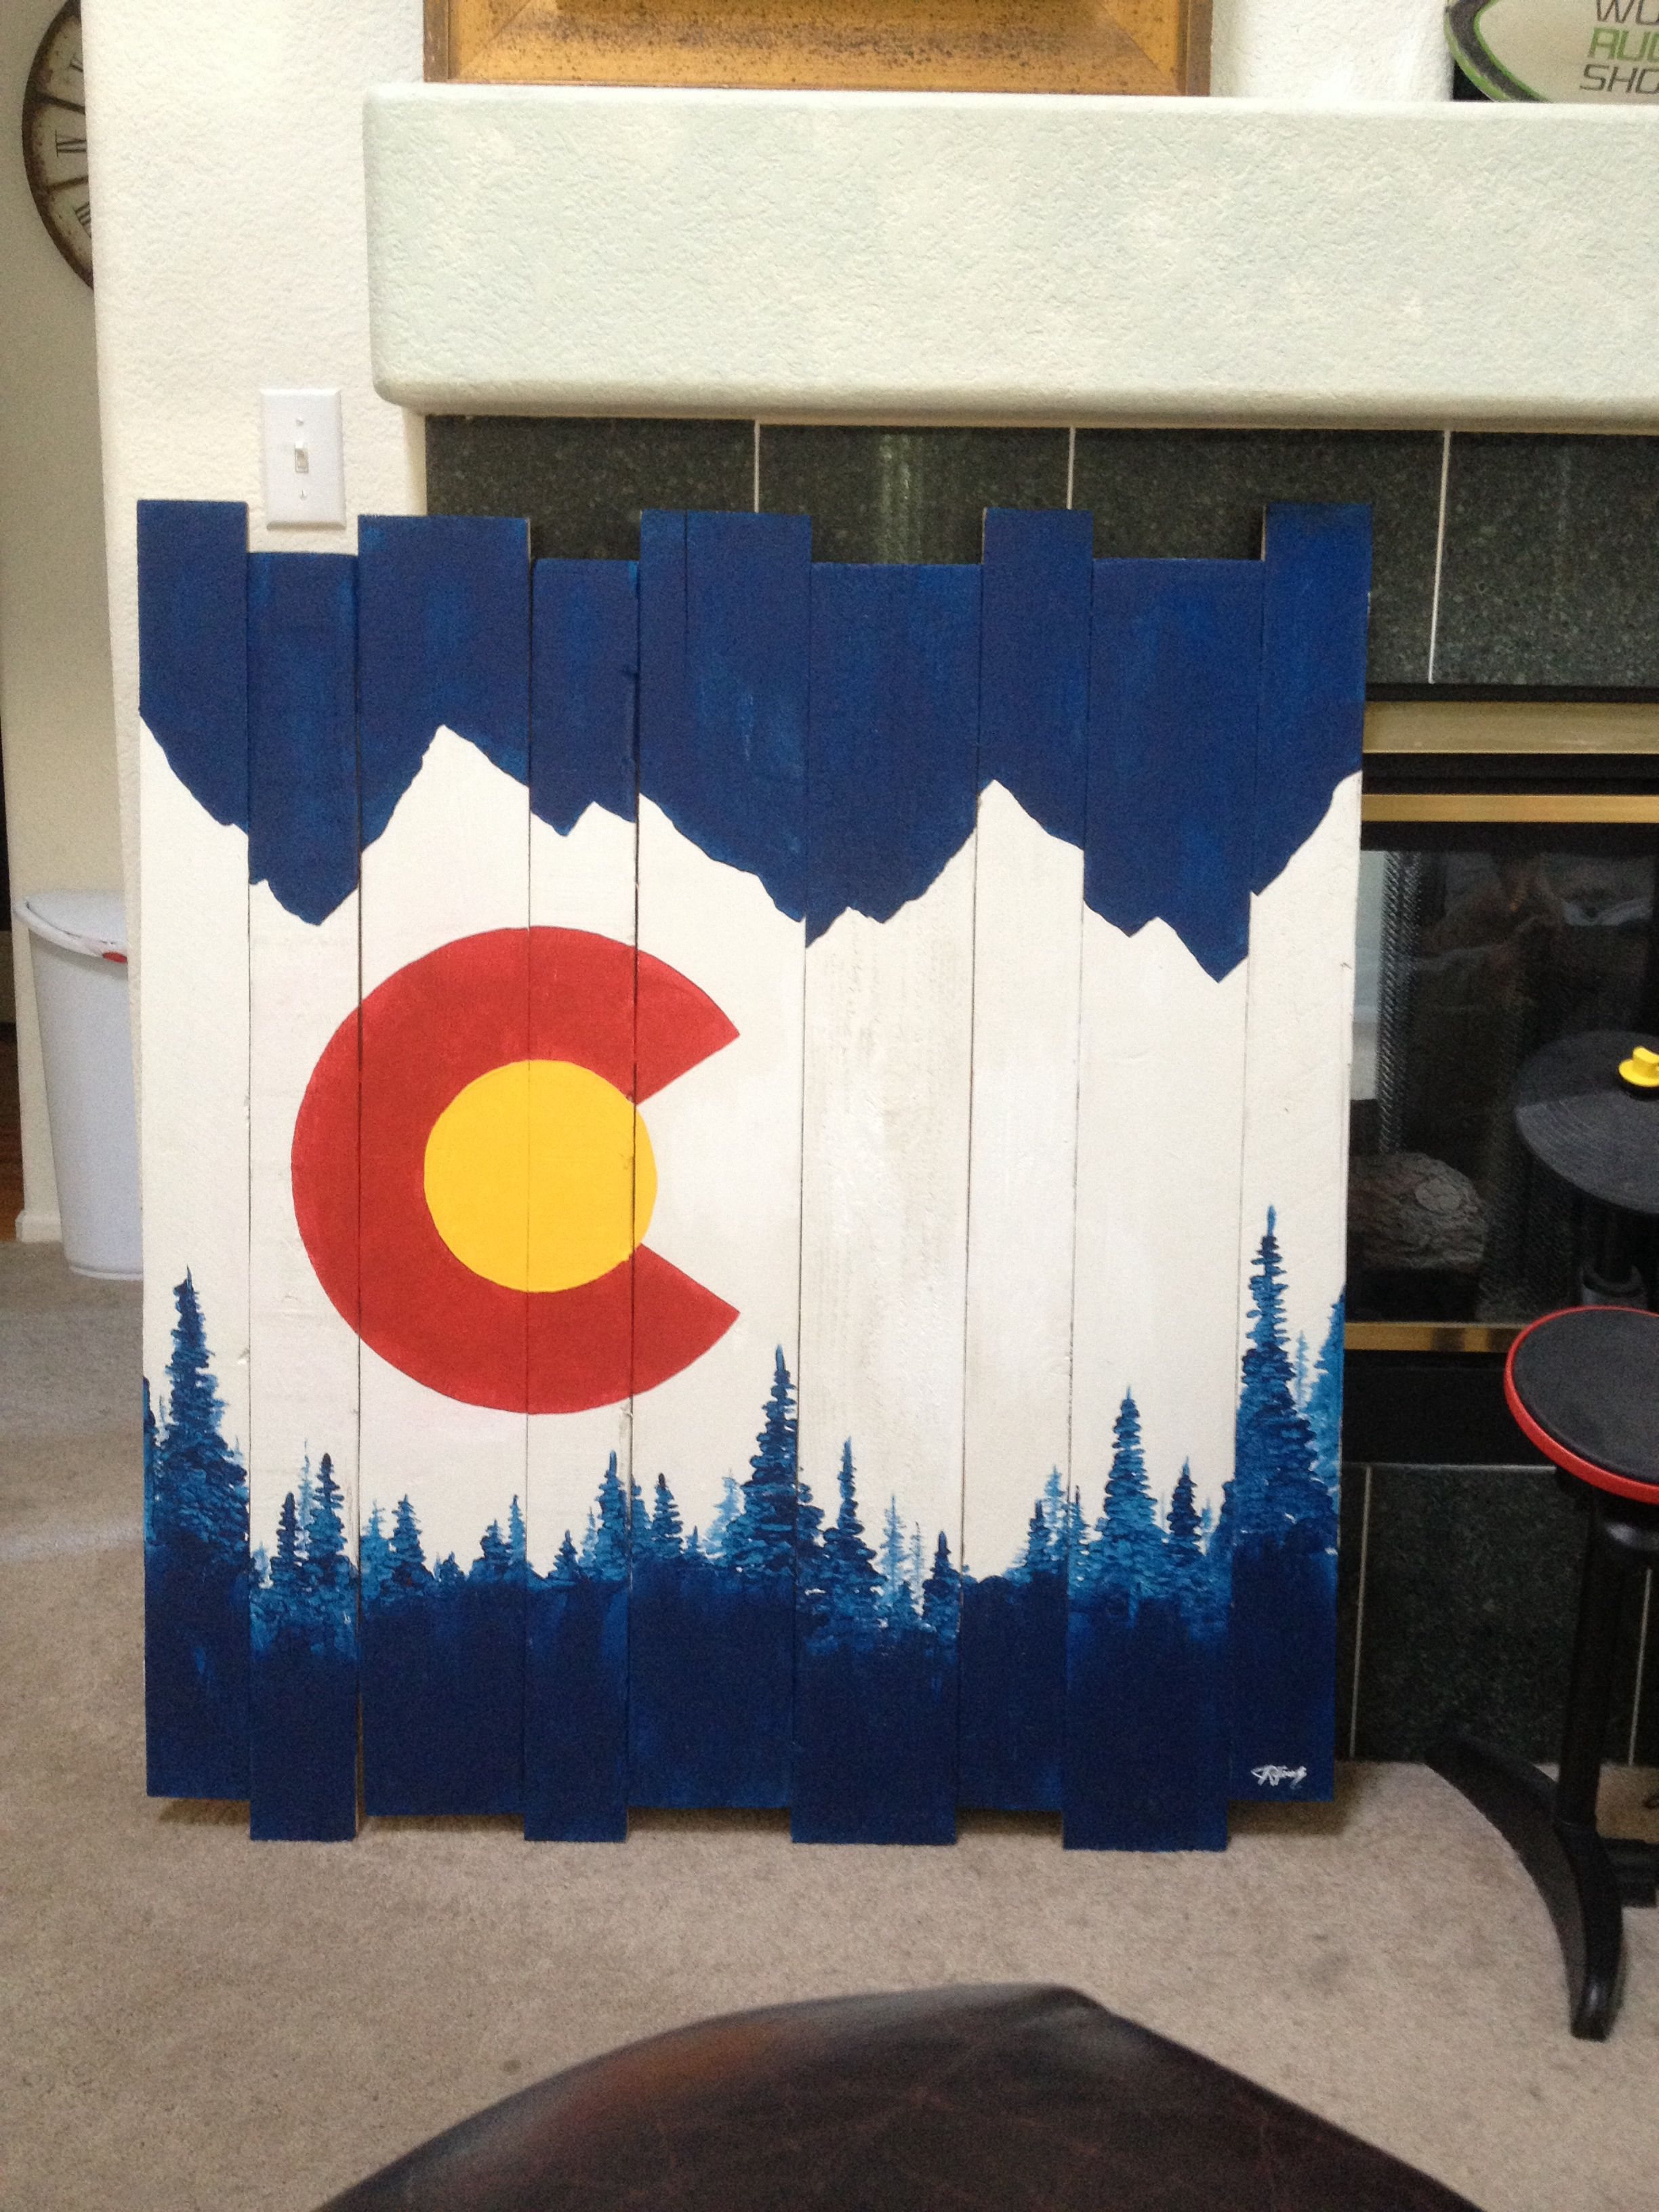 Gmail mountain theme images - These Are Custom Hand Painted Wood Pieces That I Make And Sell Mountain